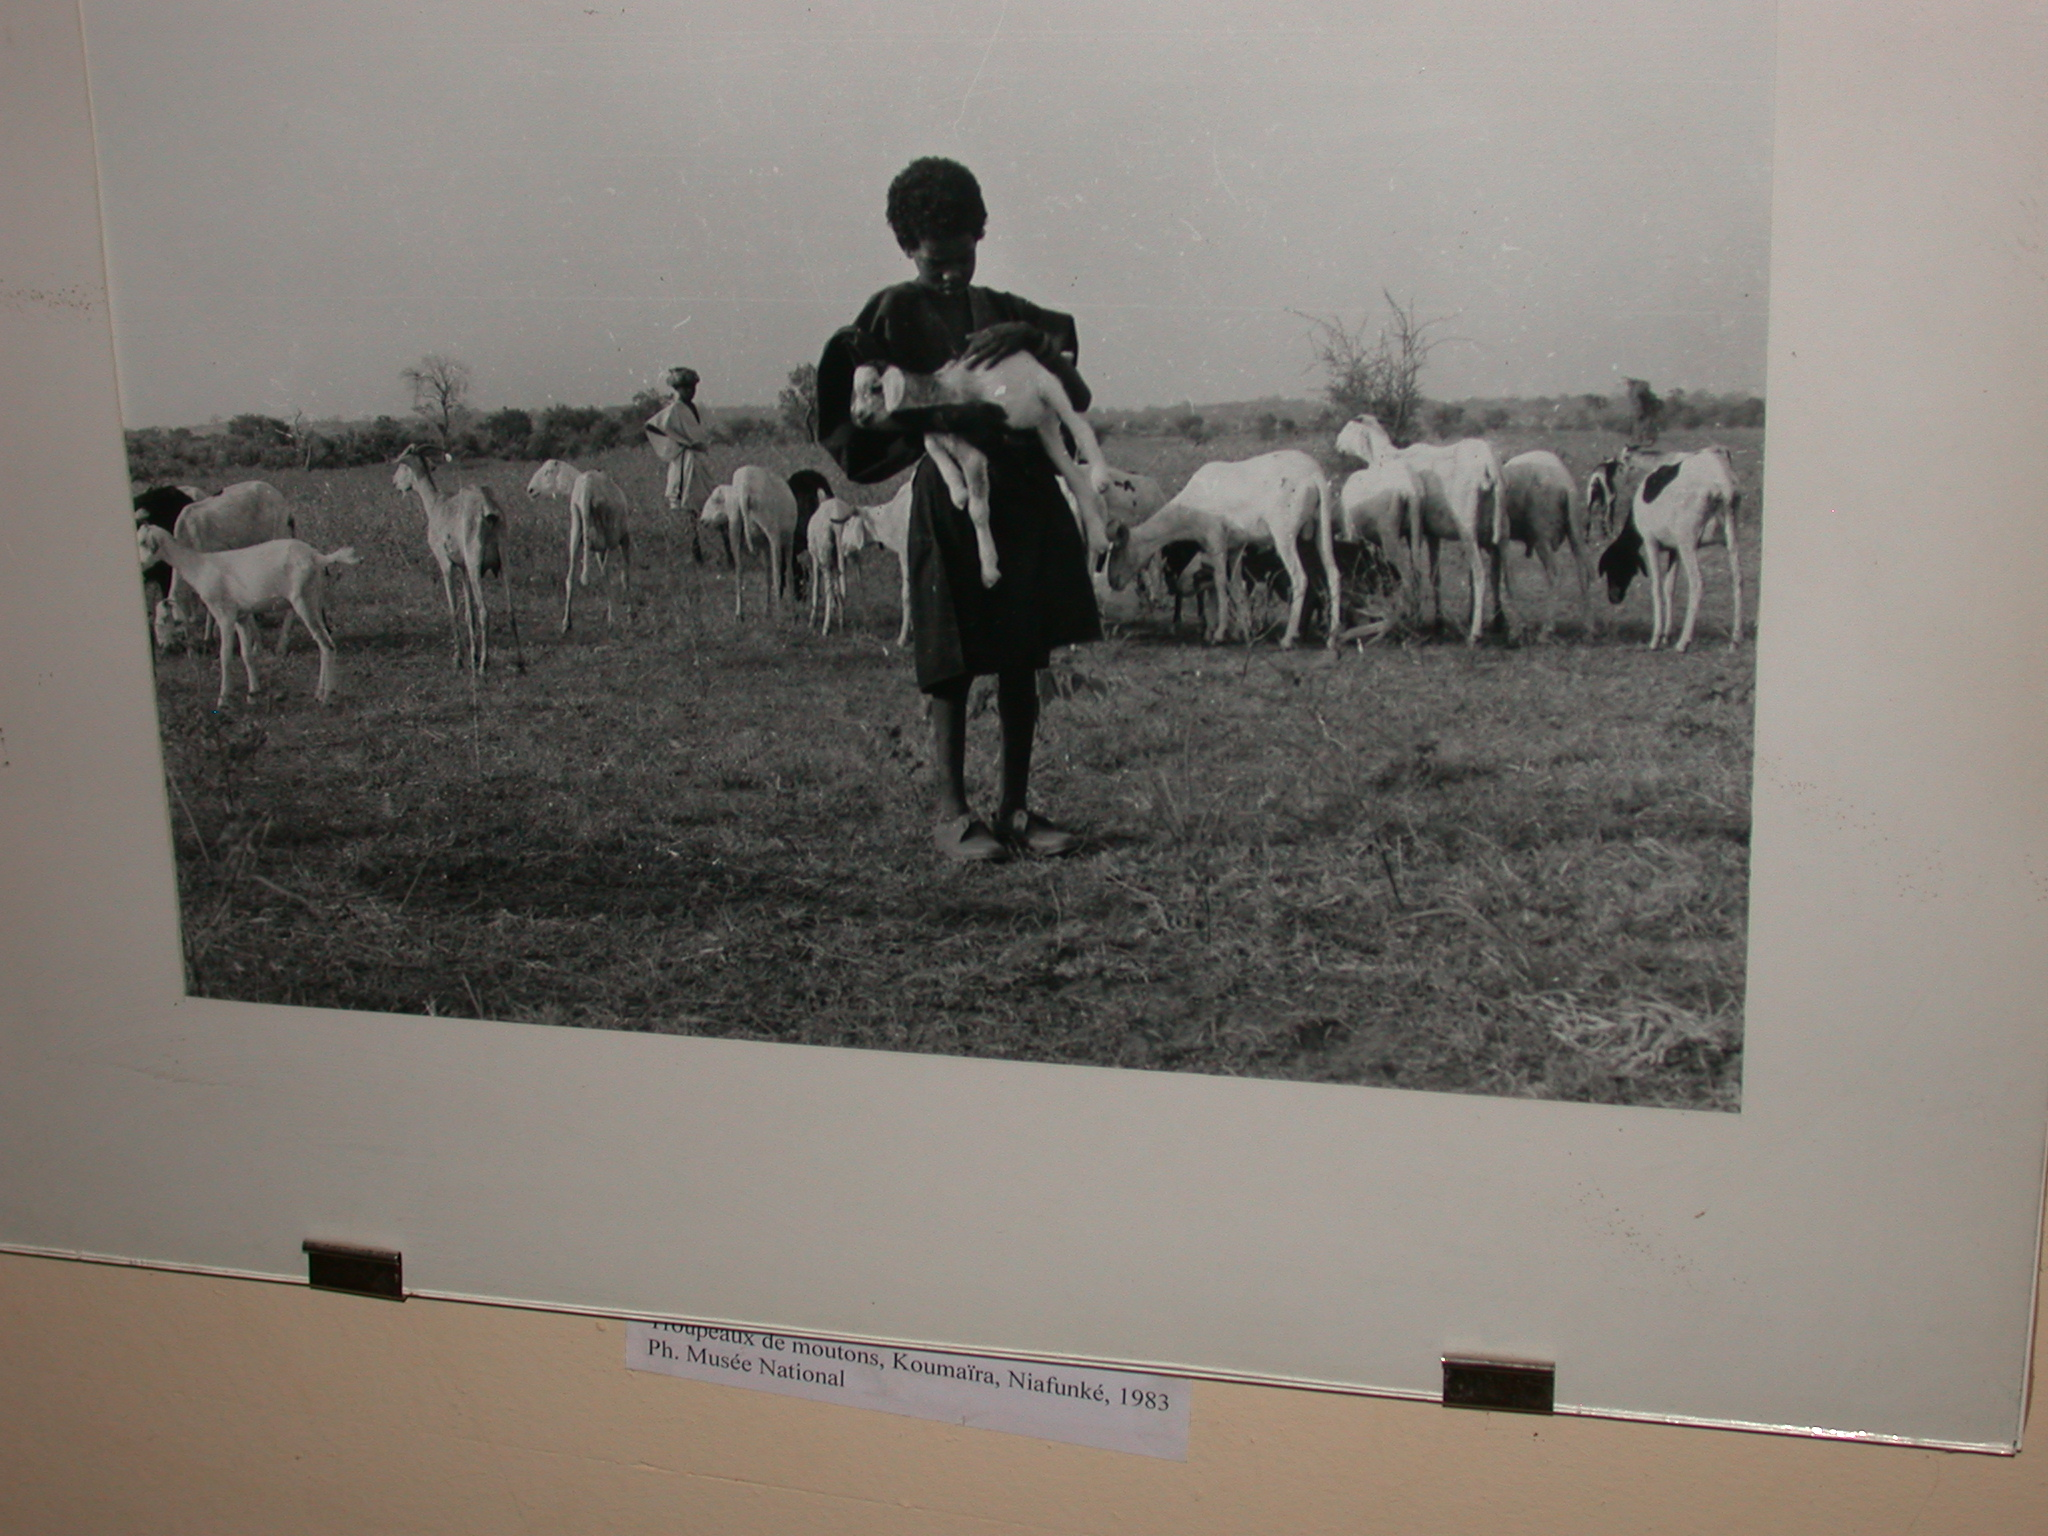 Photo of Flock of Sheep, Koumaïra, Niafunké, 1983, Timbuktu Ethnological Museum, Timbuktu, Mali